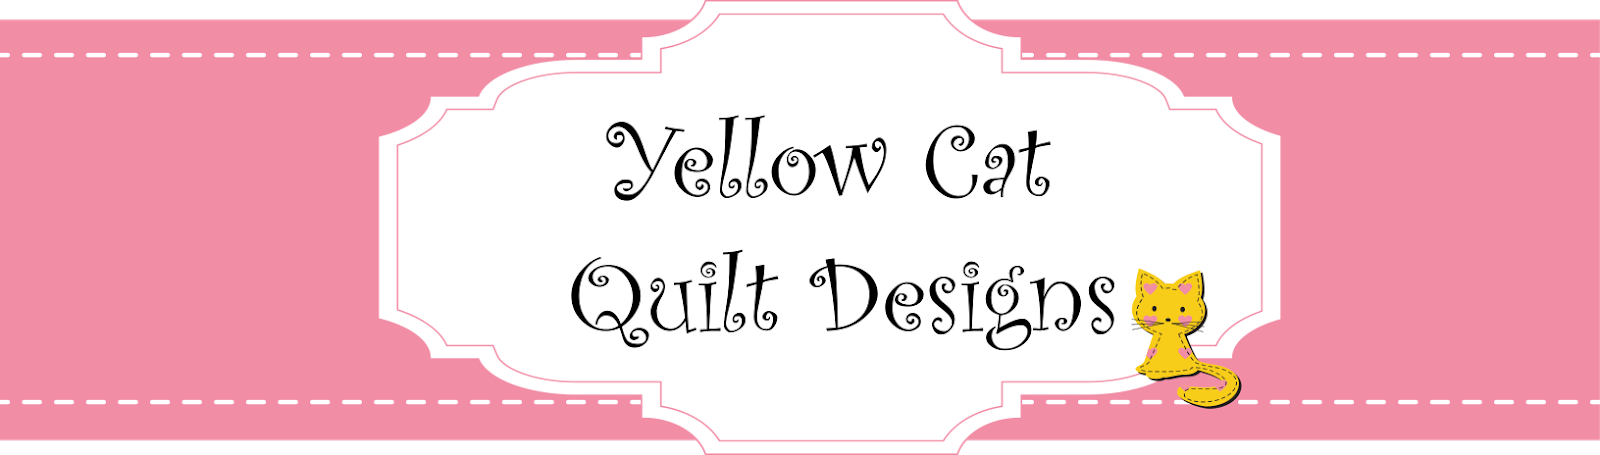 Yellow Cat Quilt Designs